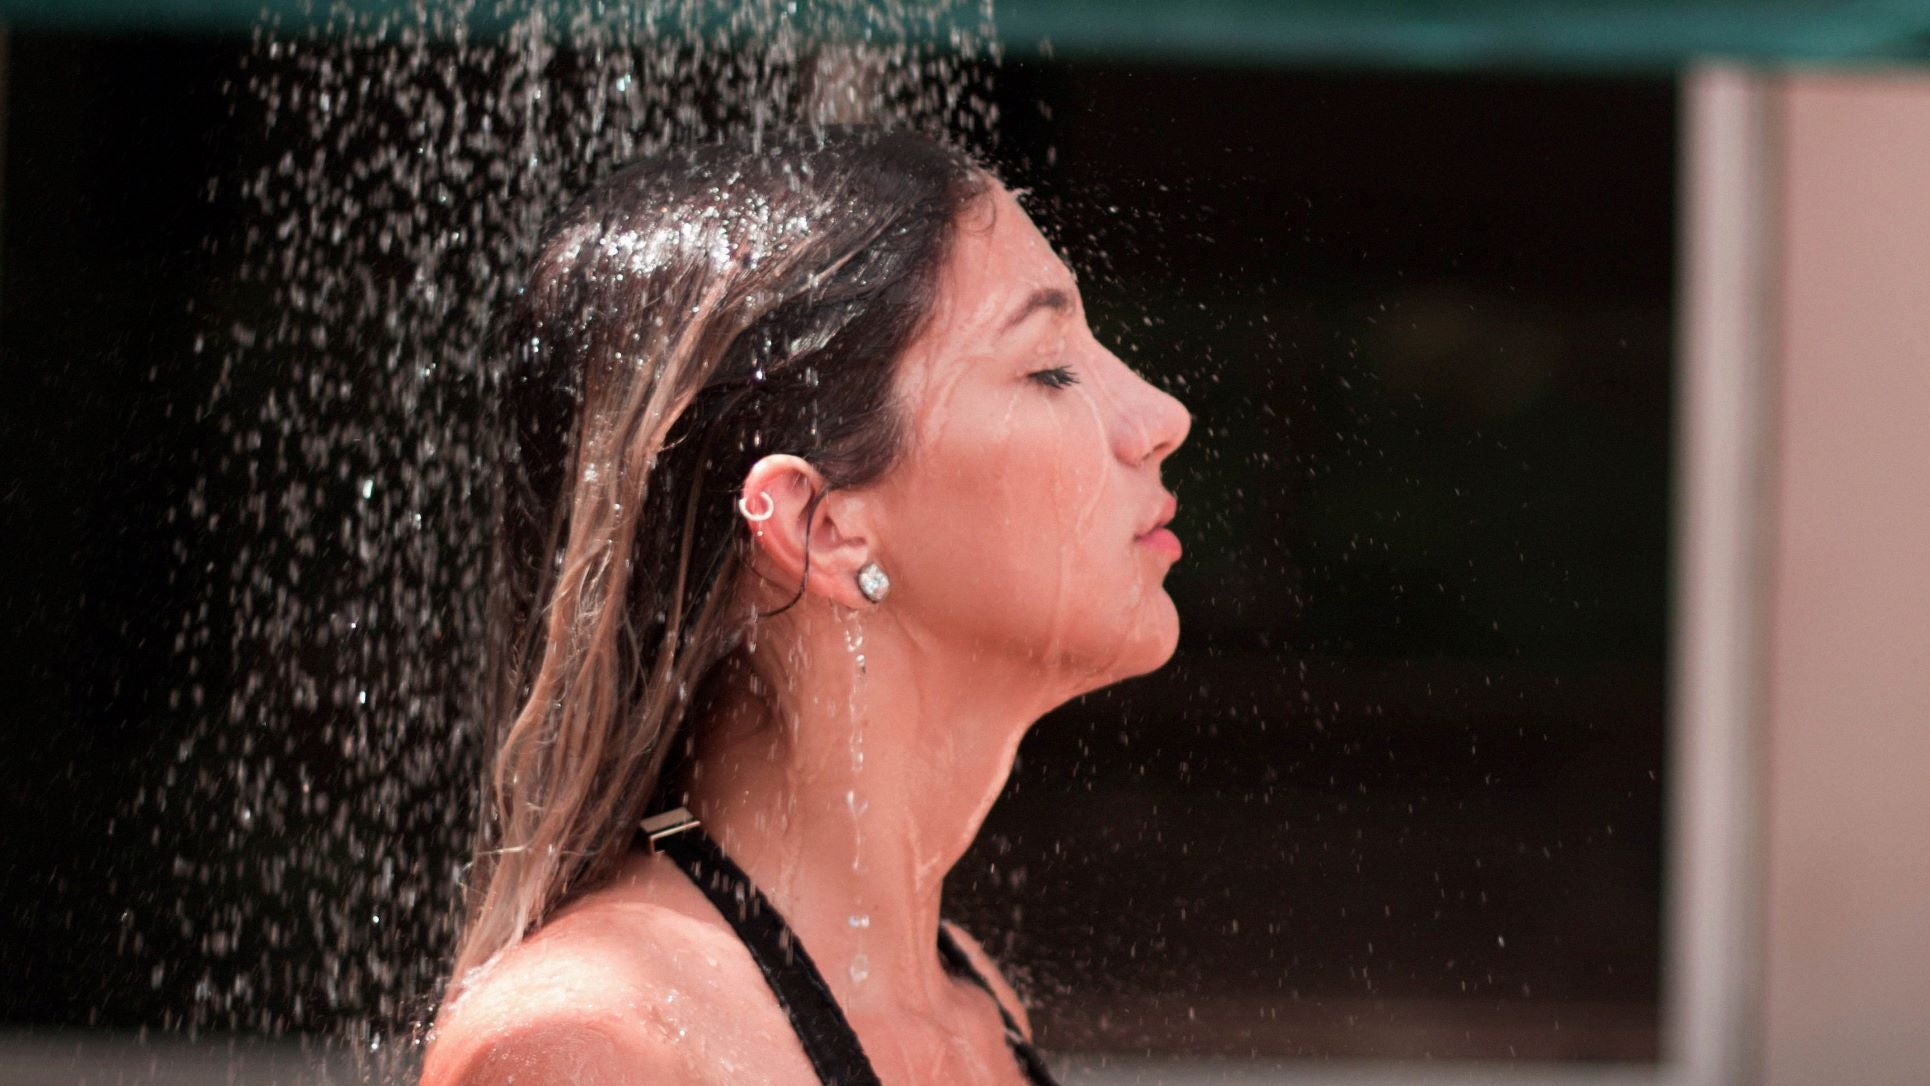 a woman showering outdoor hair fall